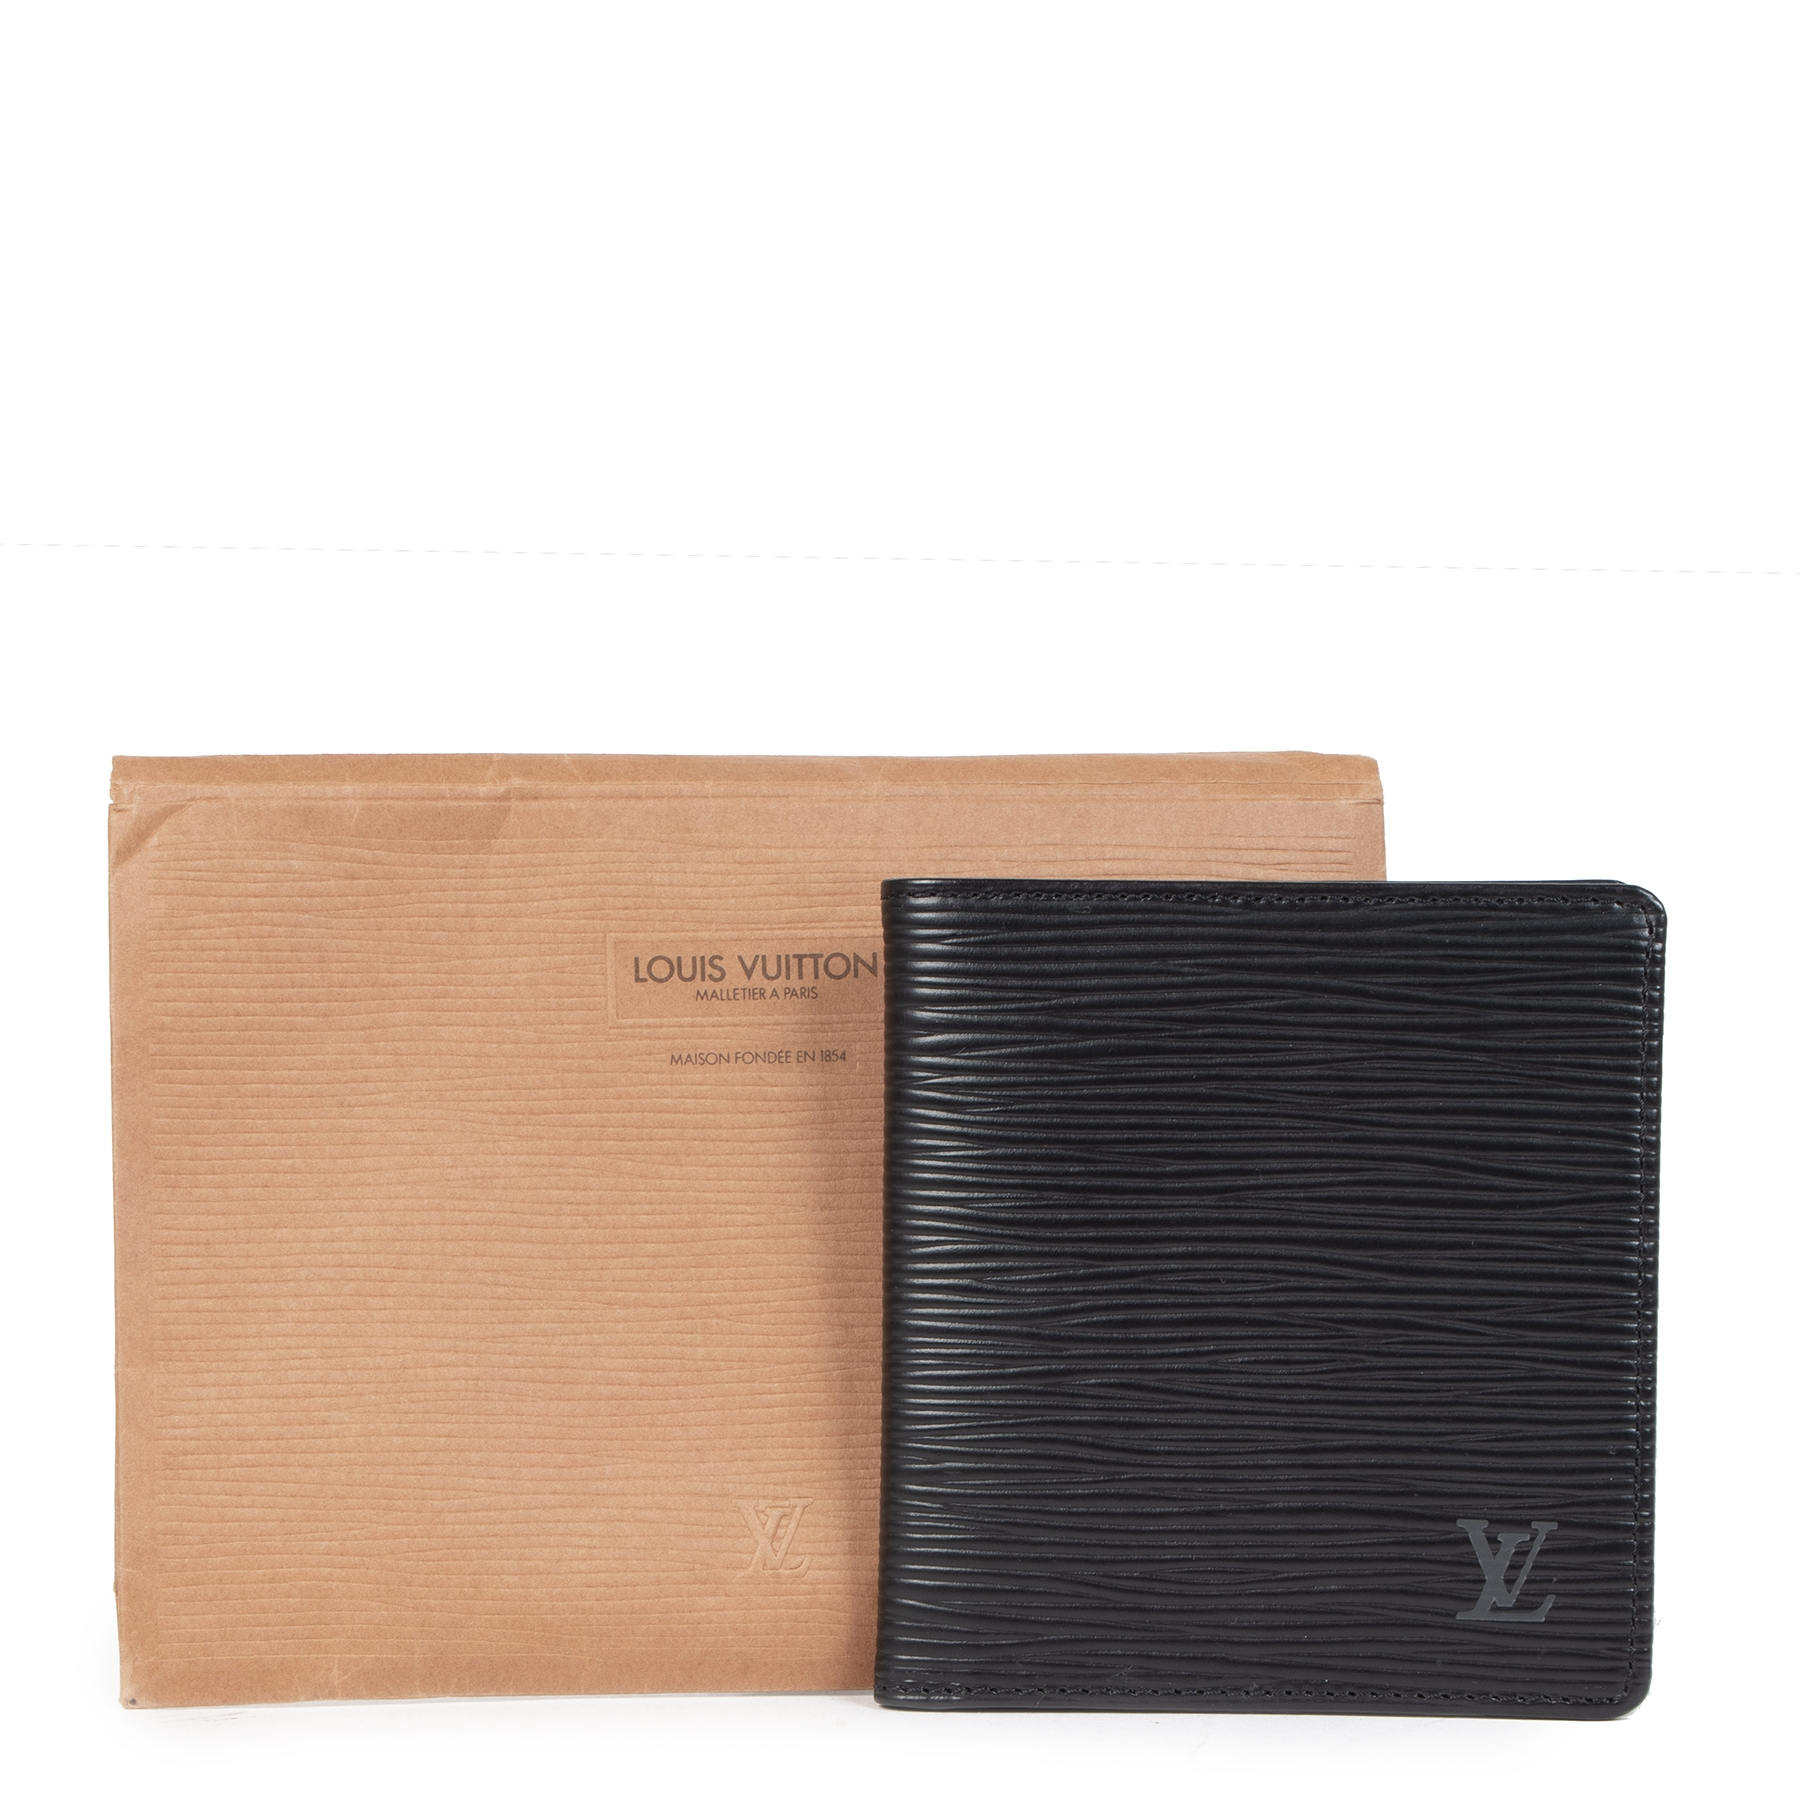 Are you looking for an authentic  Louis Vuitton Black Epi Leather Wallet ?